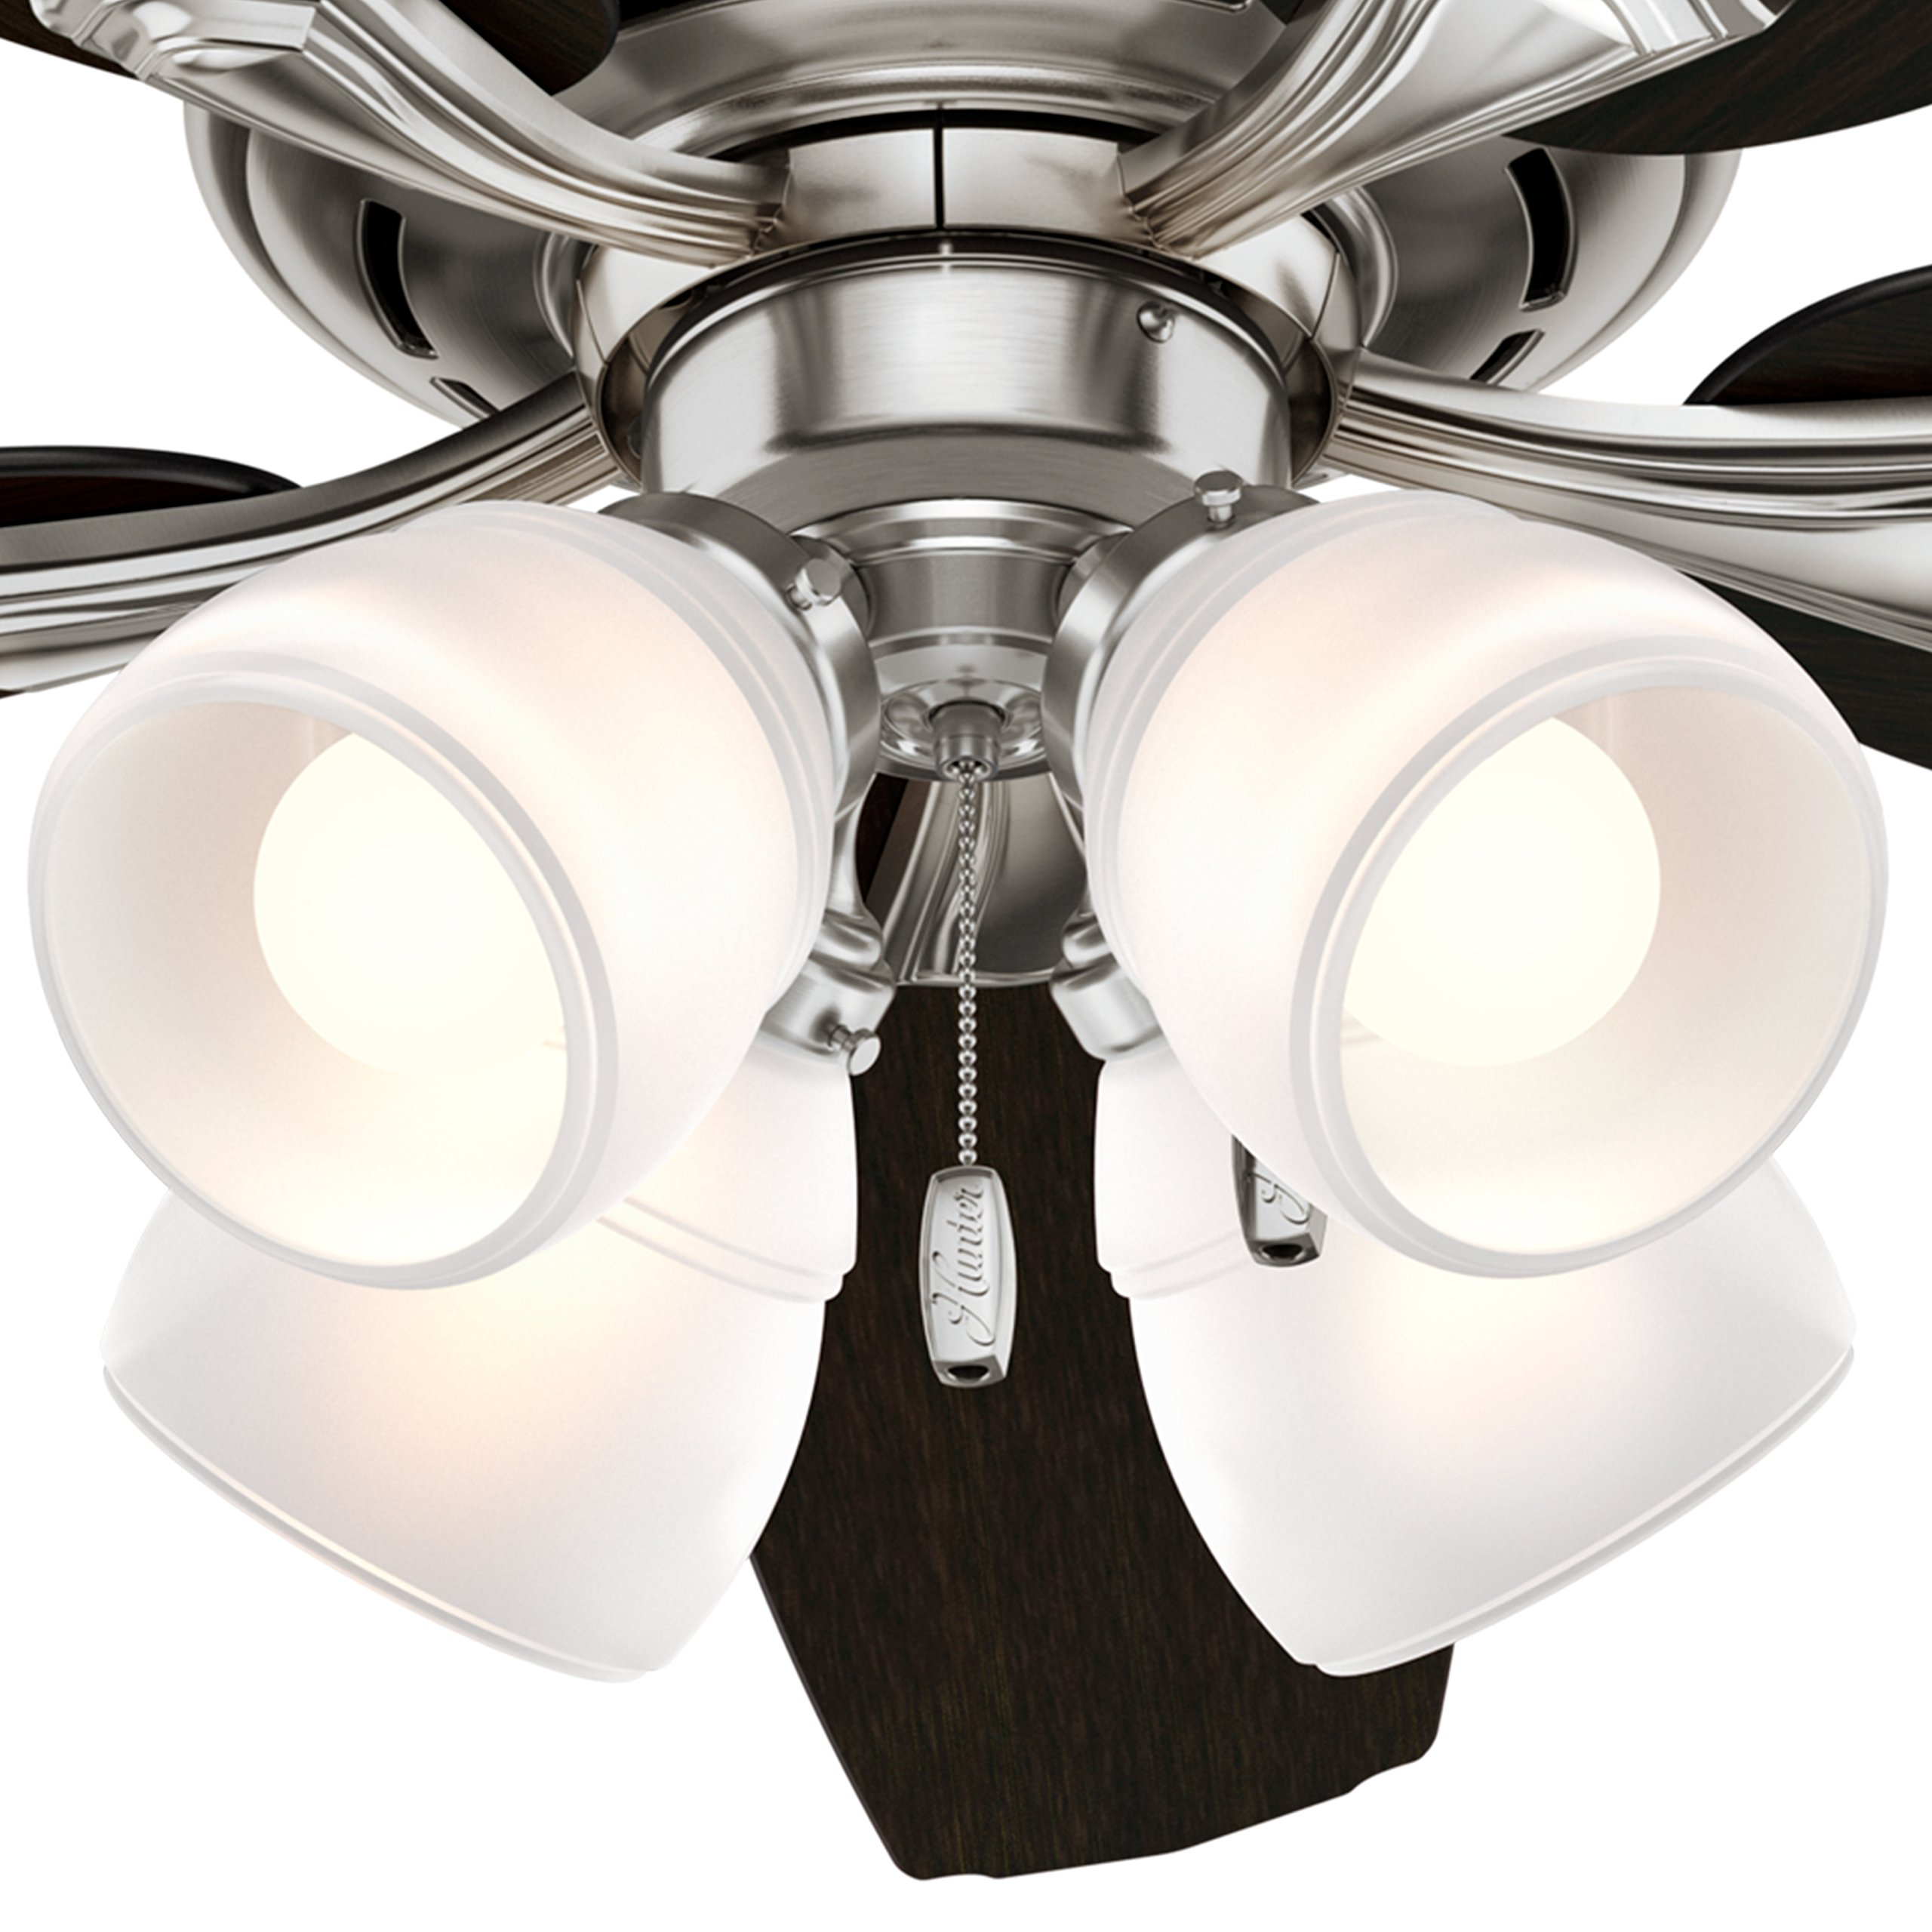 Hunter 52 in. Ceiling Fan with 4 LED Lights in Brushed Nickel (Certified Refurbished) by Hunter Fan Company (Image #3)